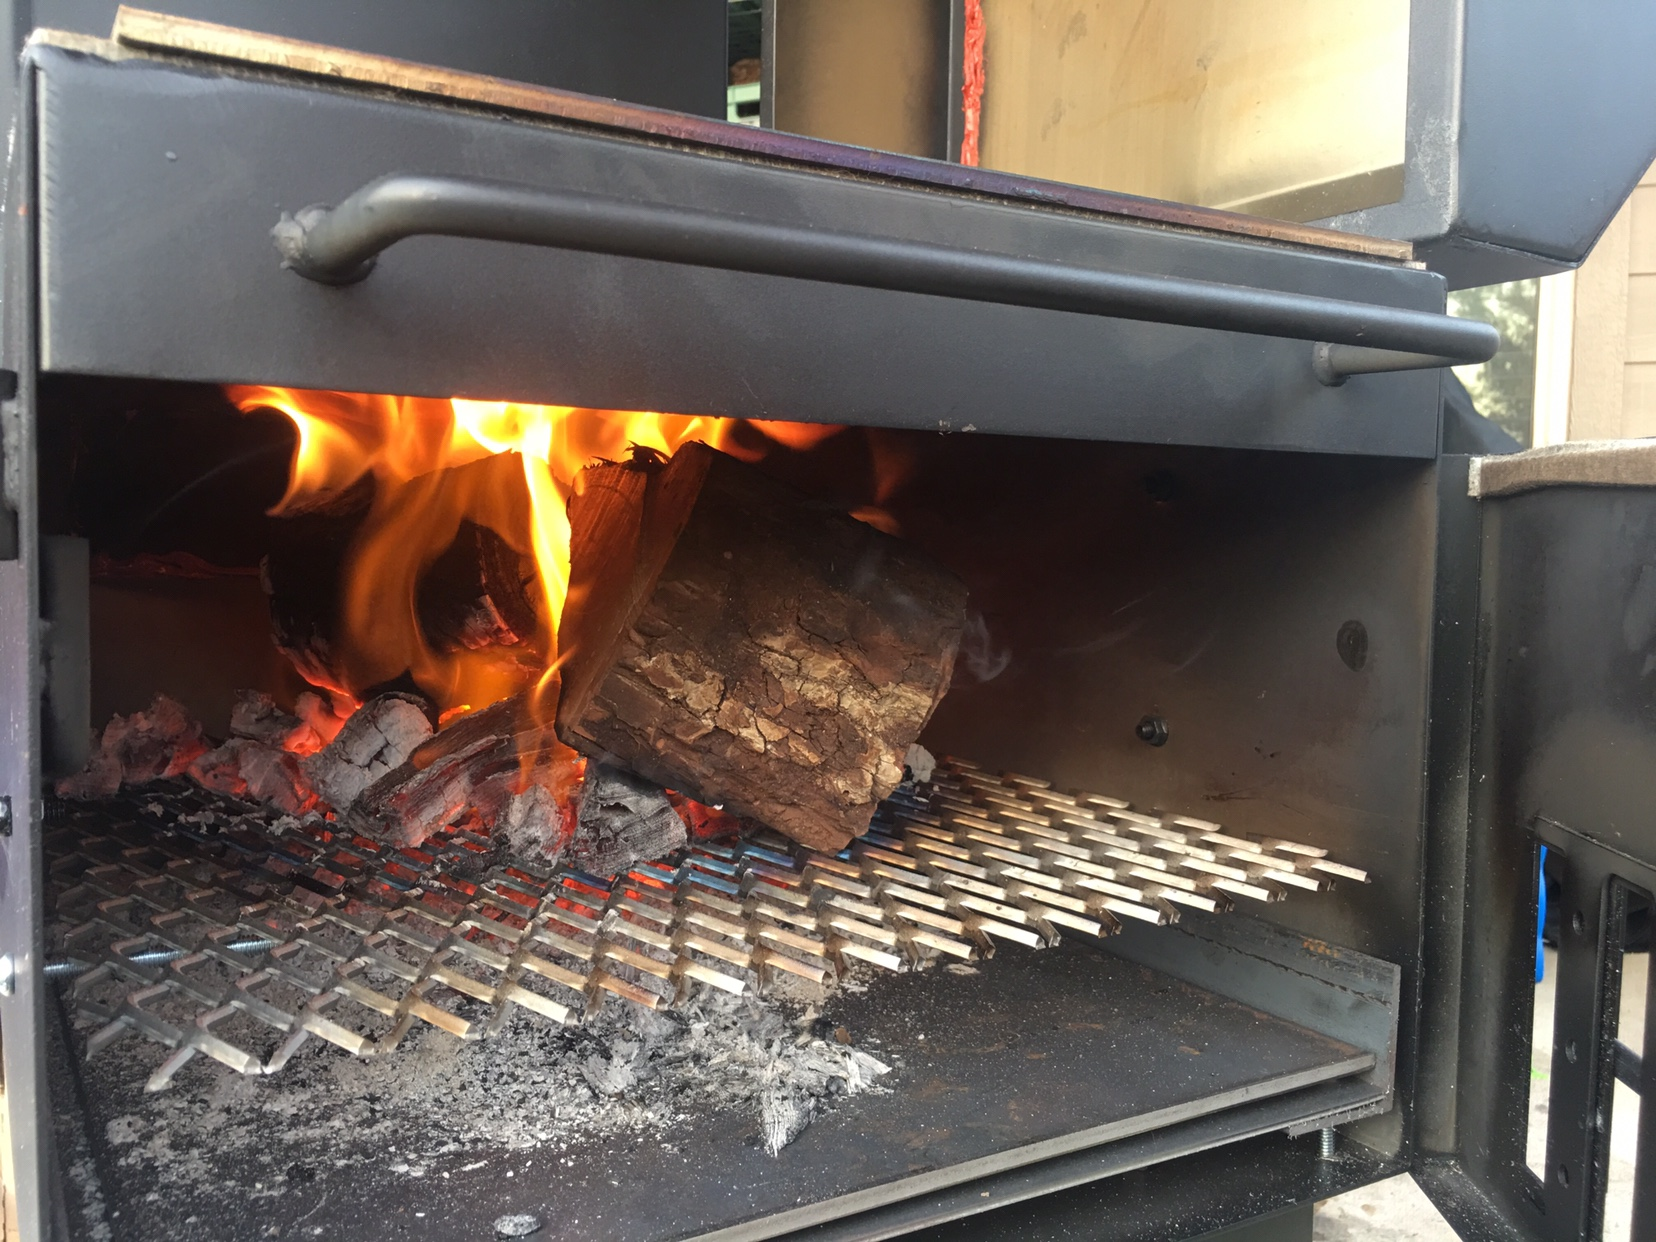 Bandera 101 Document [Archive] - The BBQ BRETHREN FORUMS